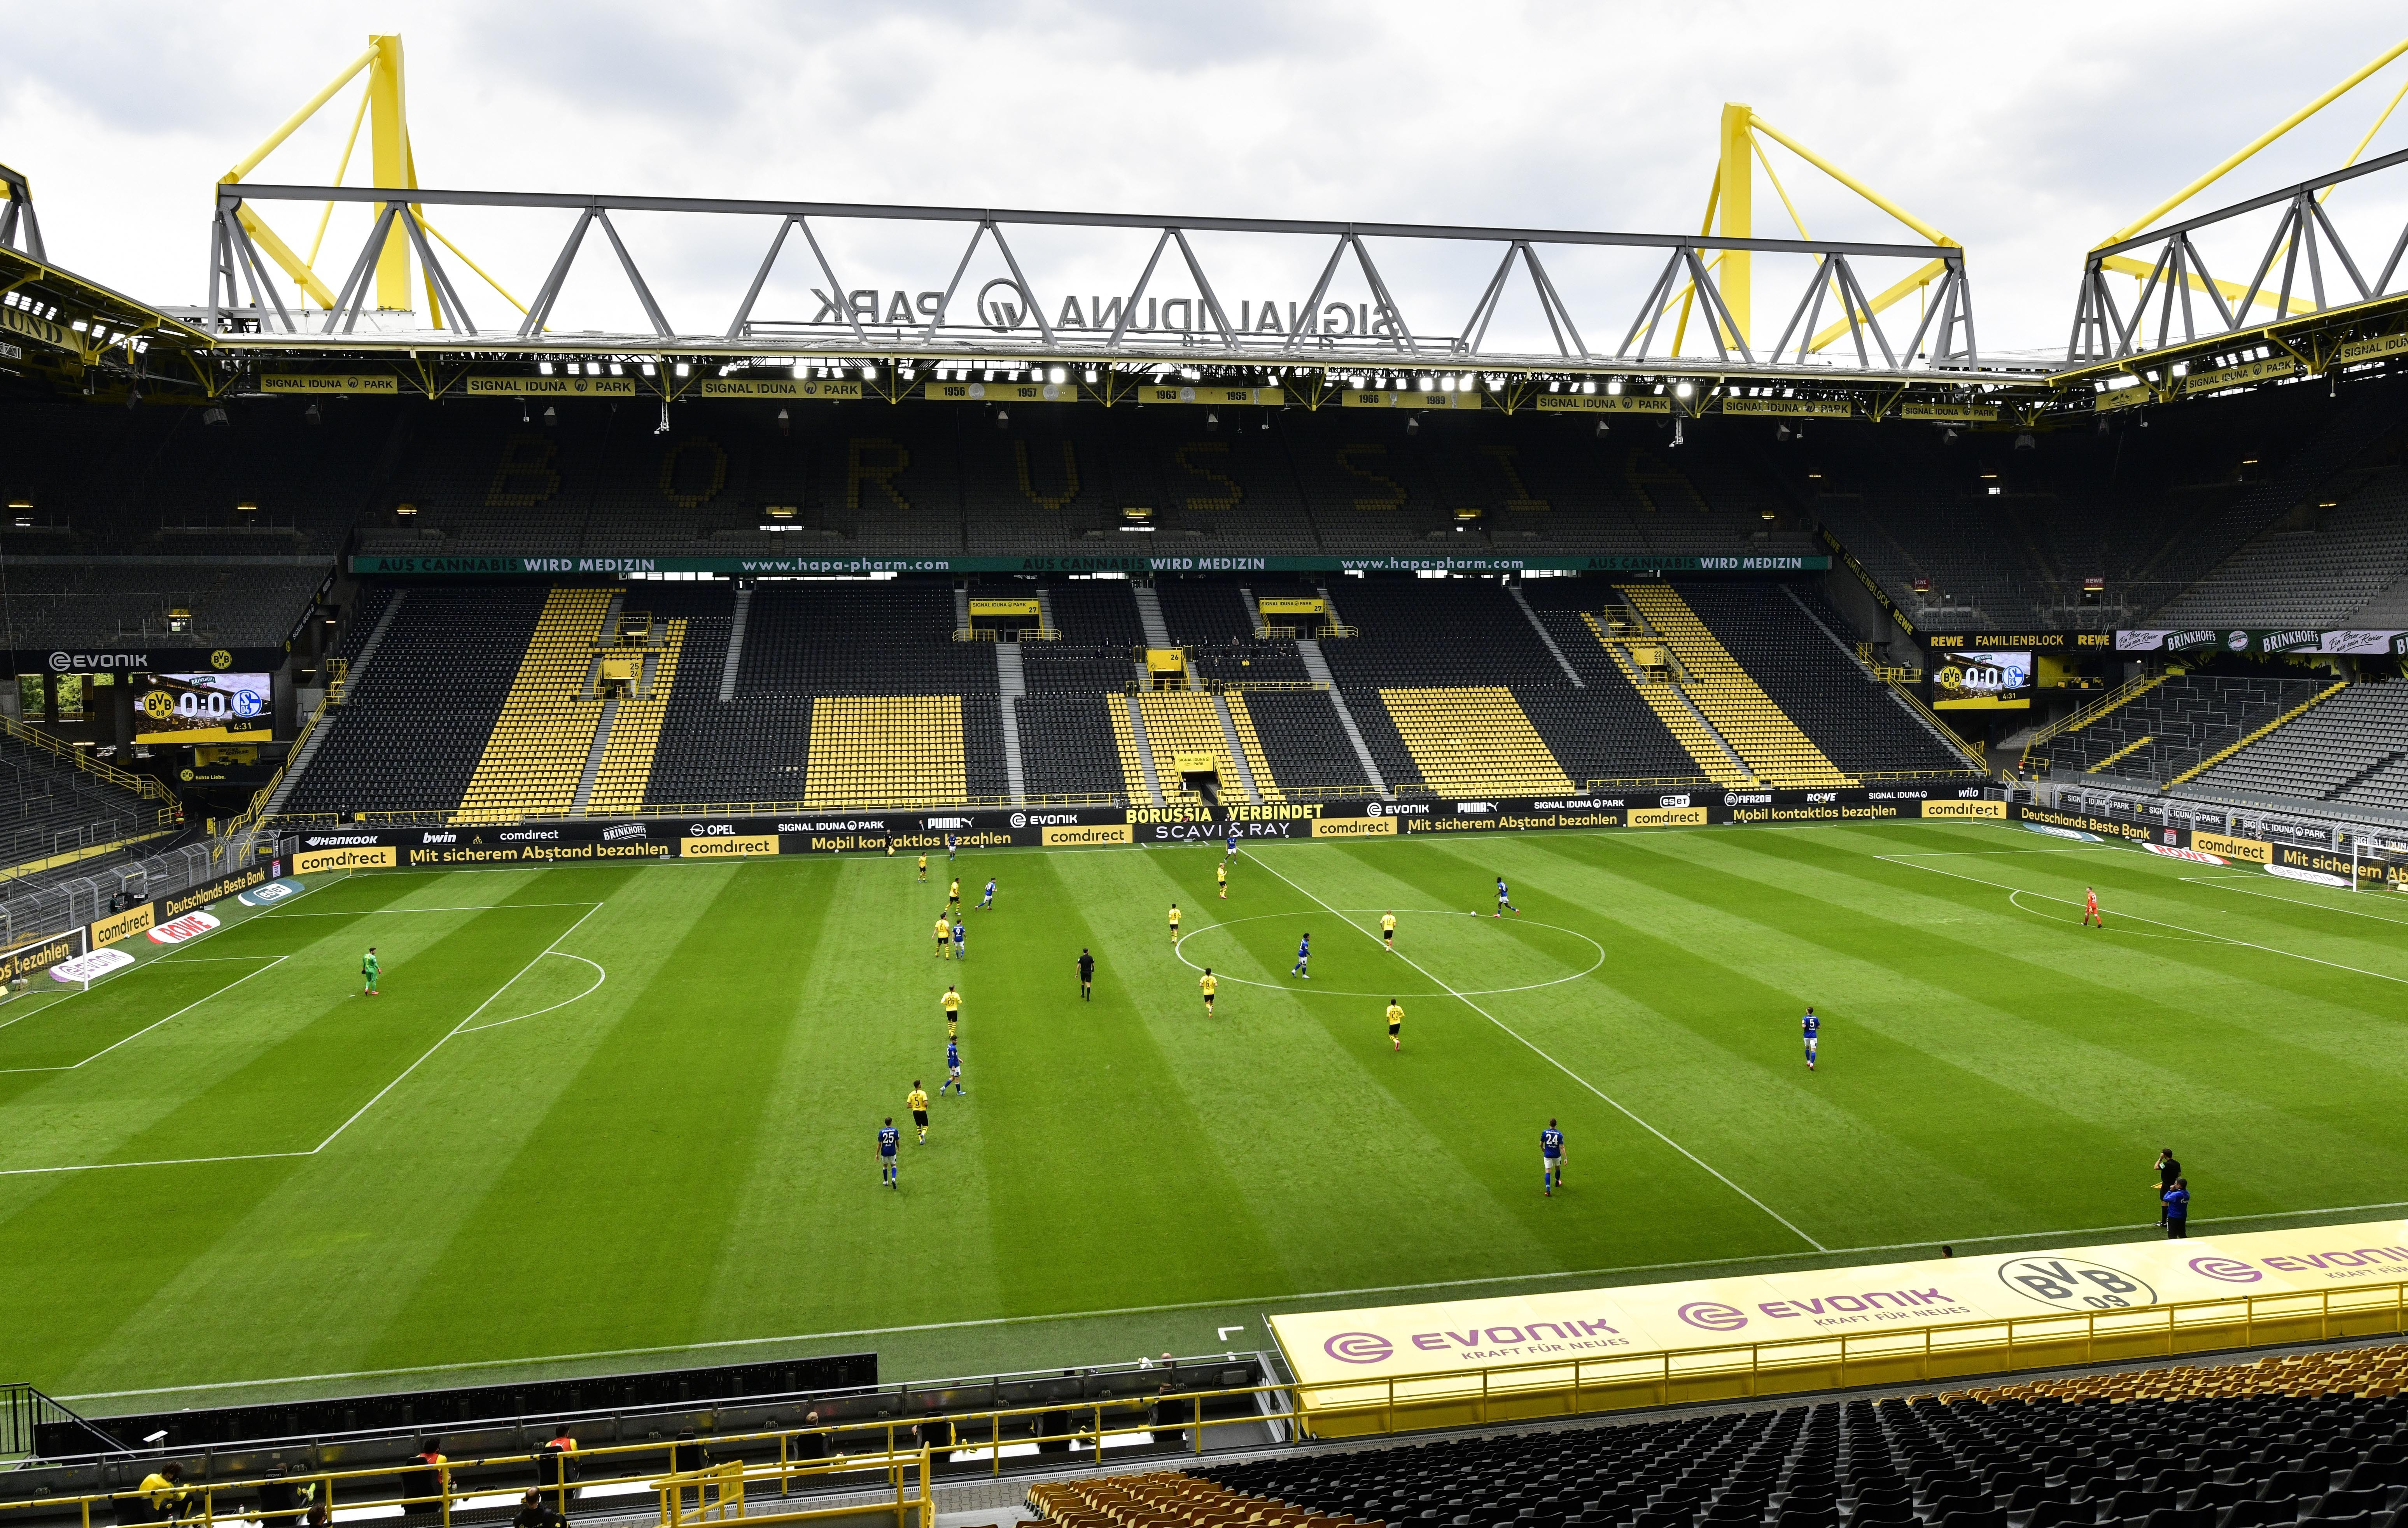 Empty seats are seen in the Signal Iduna Park without spectators during the German Bundesliga soccer match between Borussia Dortmund and Schalke 04 in Dortmund on  Saturday. The Bundesliga becomes the world's first major soccer league to resume plan after a two-month suspension because of the coronavirus pandemic. [HEINZ BUESE  |  AP]